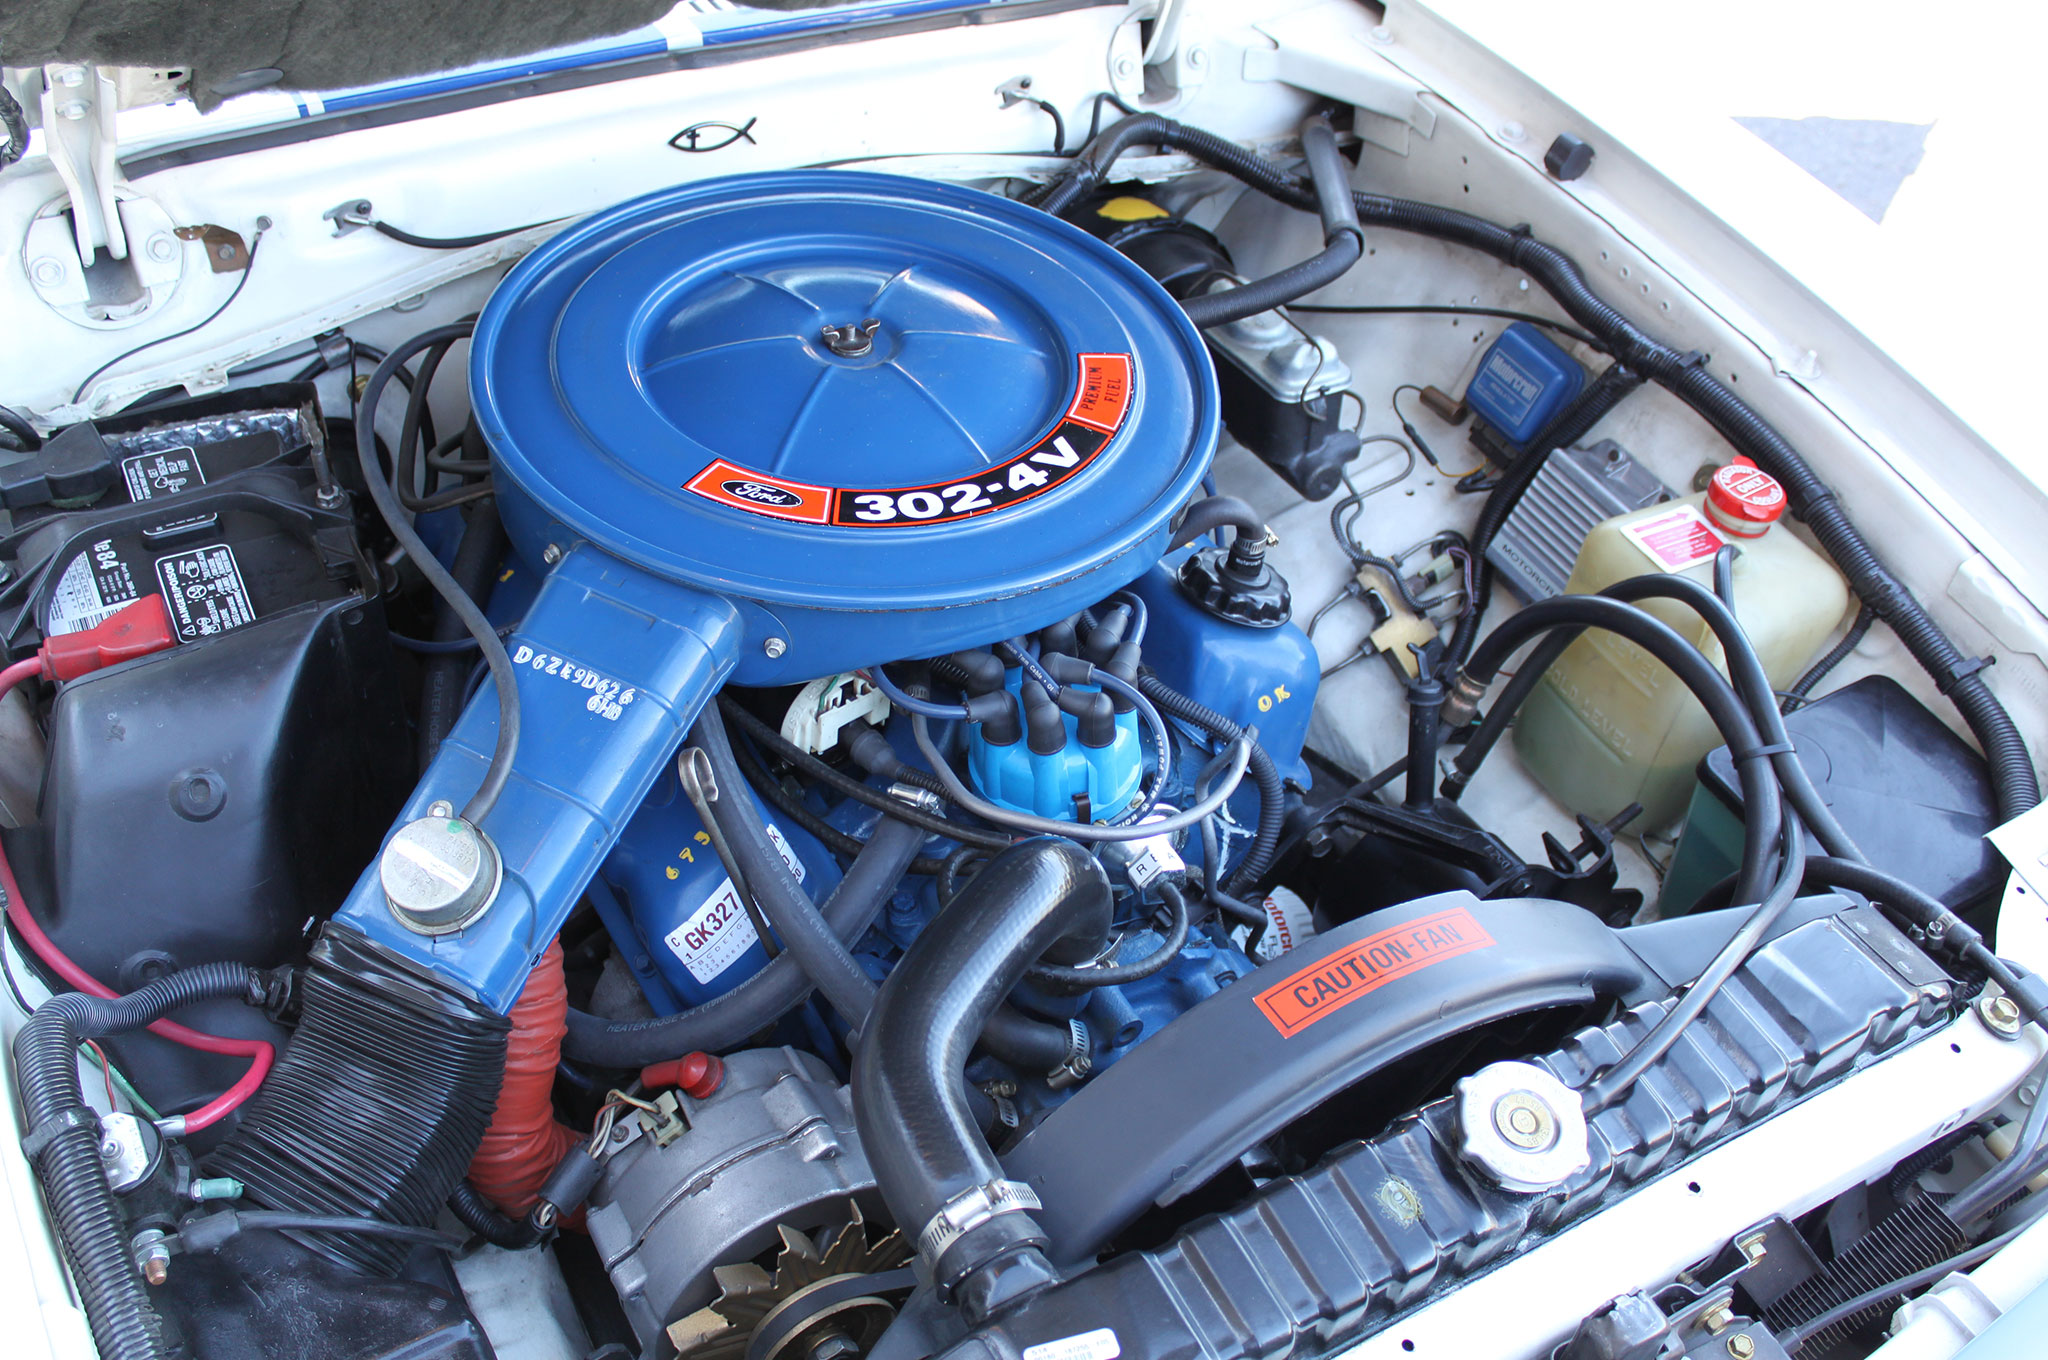 1976 Ford Mustang Cobra Engine Bay